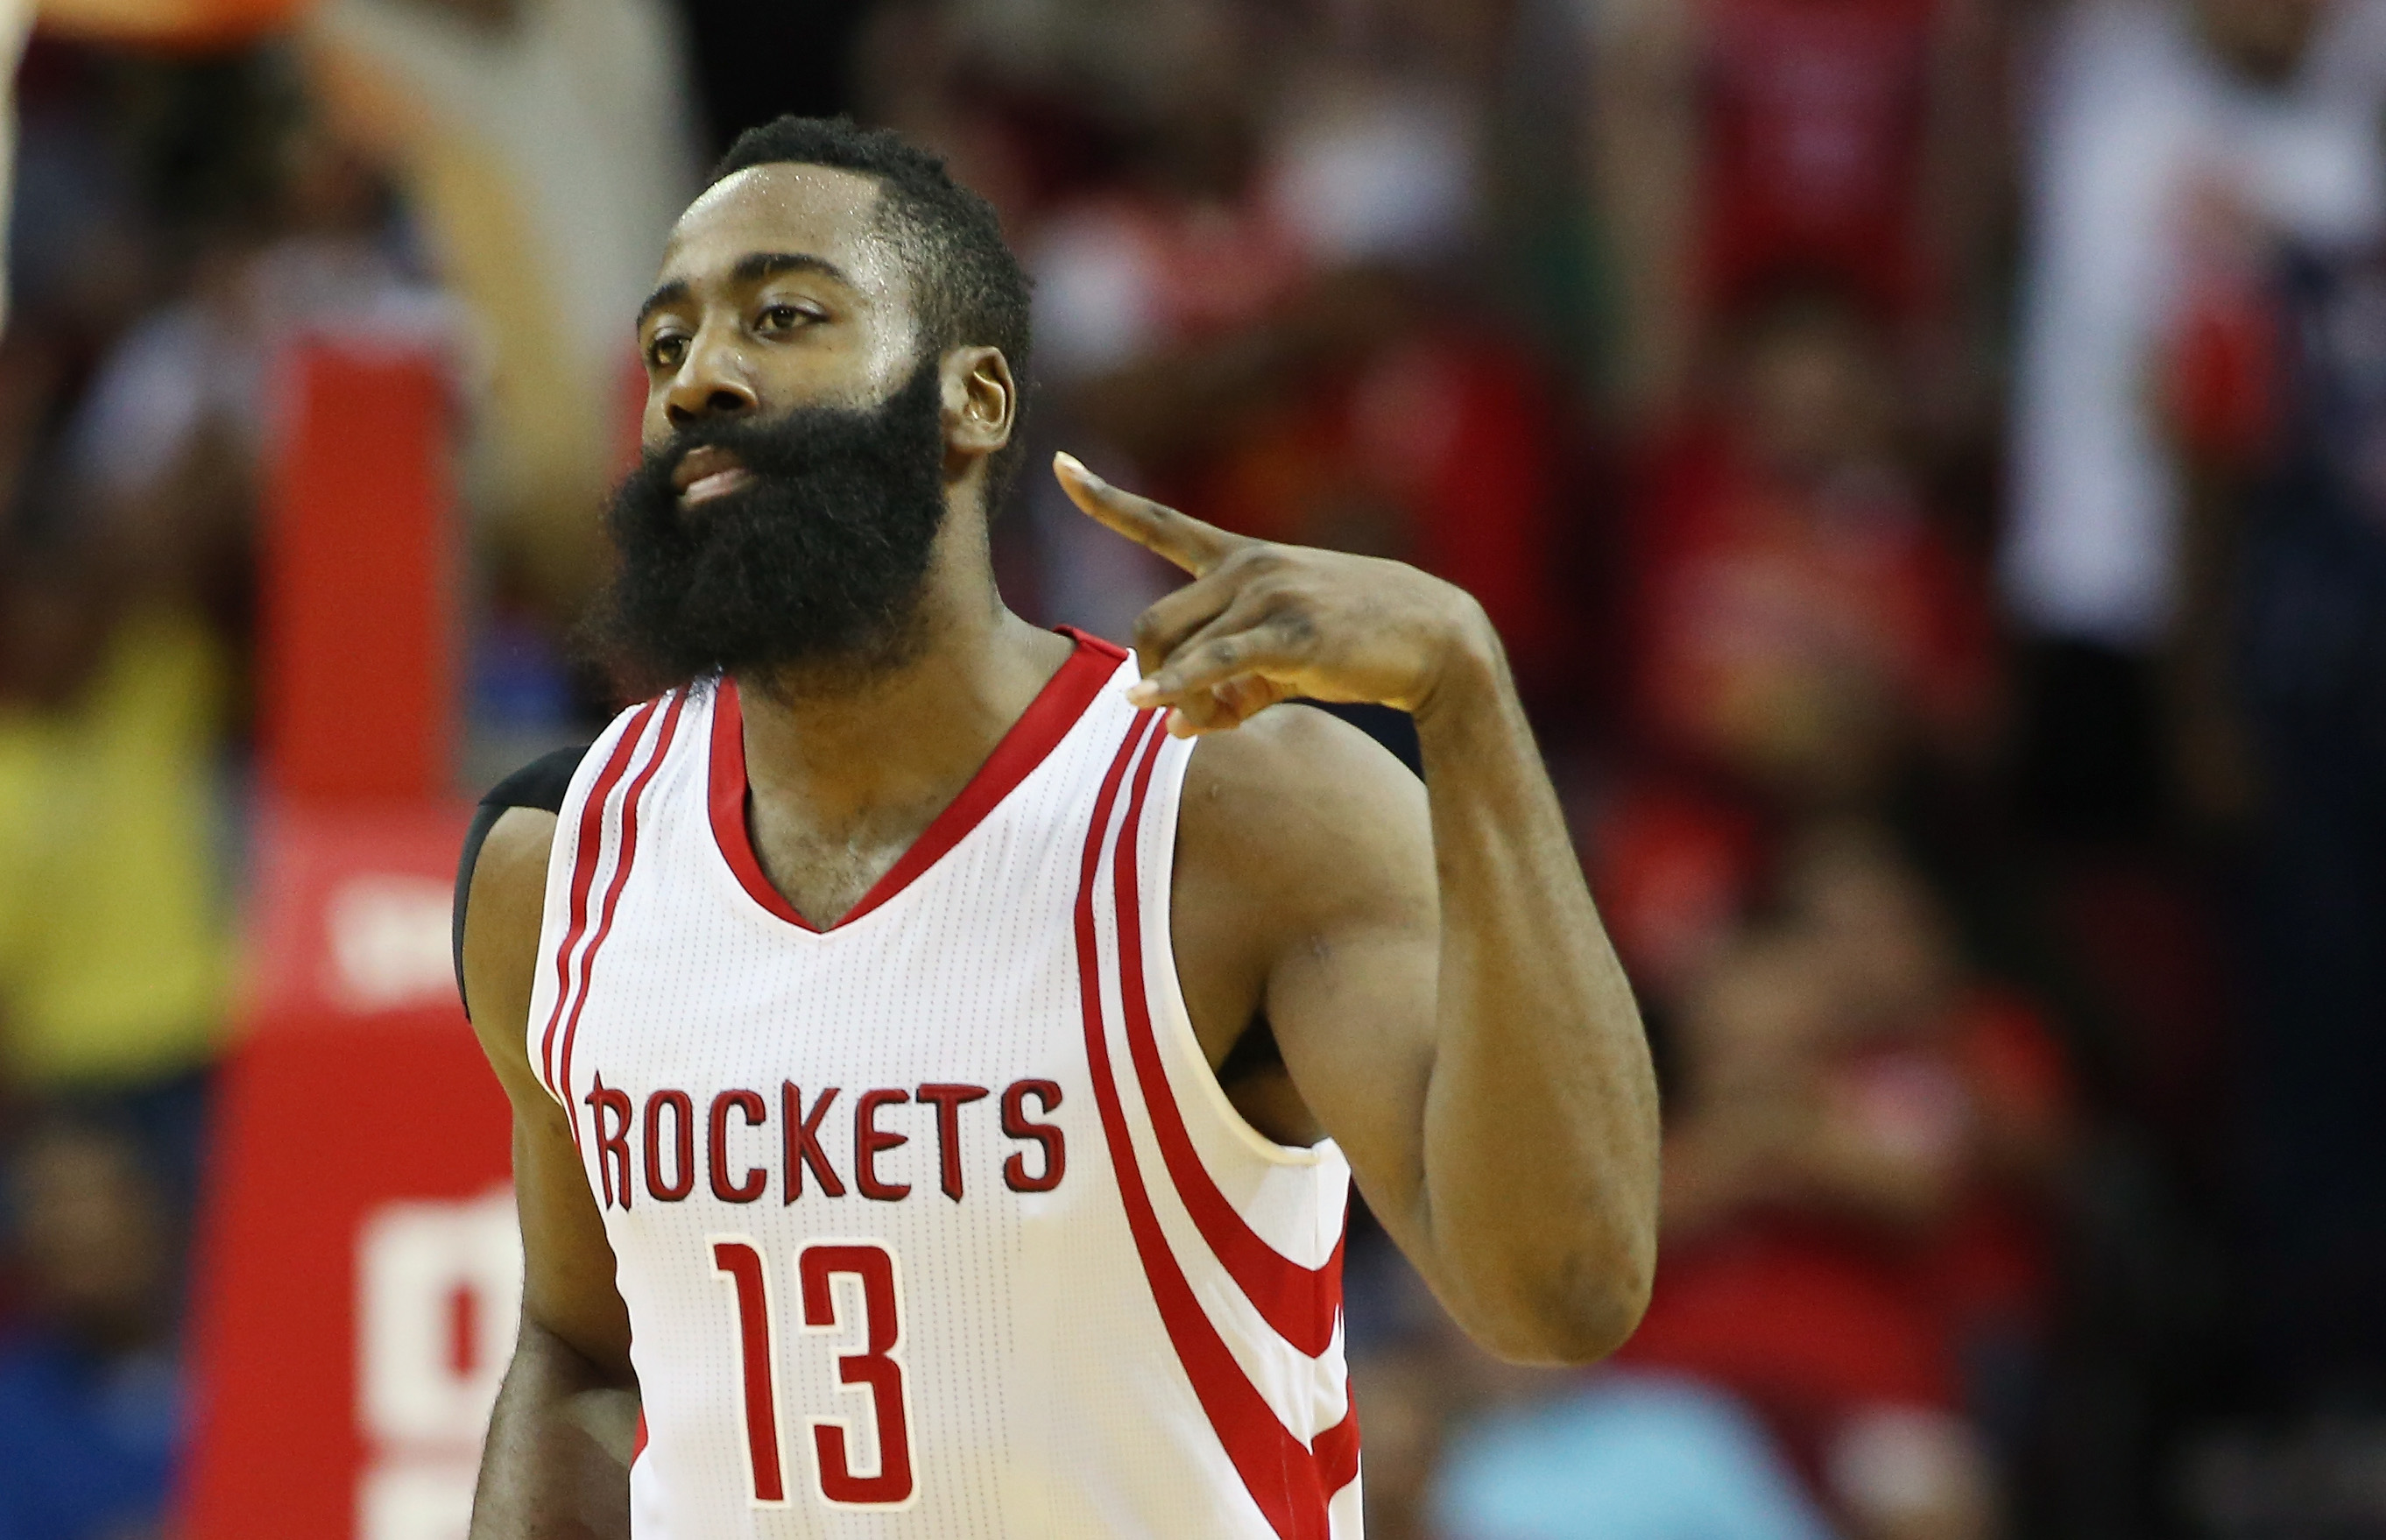 HOUSTON, TX - NOVEMBER 27:  James Harden #13 of the Houston Rockets celebrates after a three-point shot during their game against the Philadelphia 76ers at the Toyota Center on November 27, 2015 in Houston, Texas.  (Photo by Scott Halleran/Getty Images)